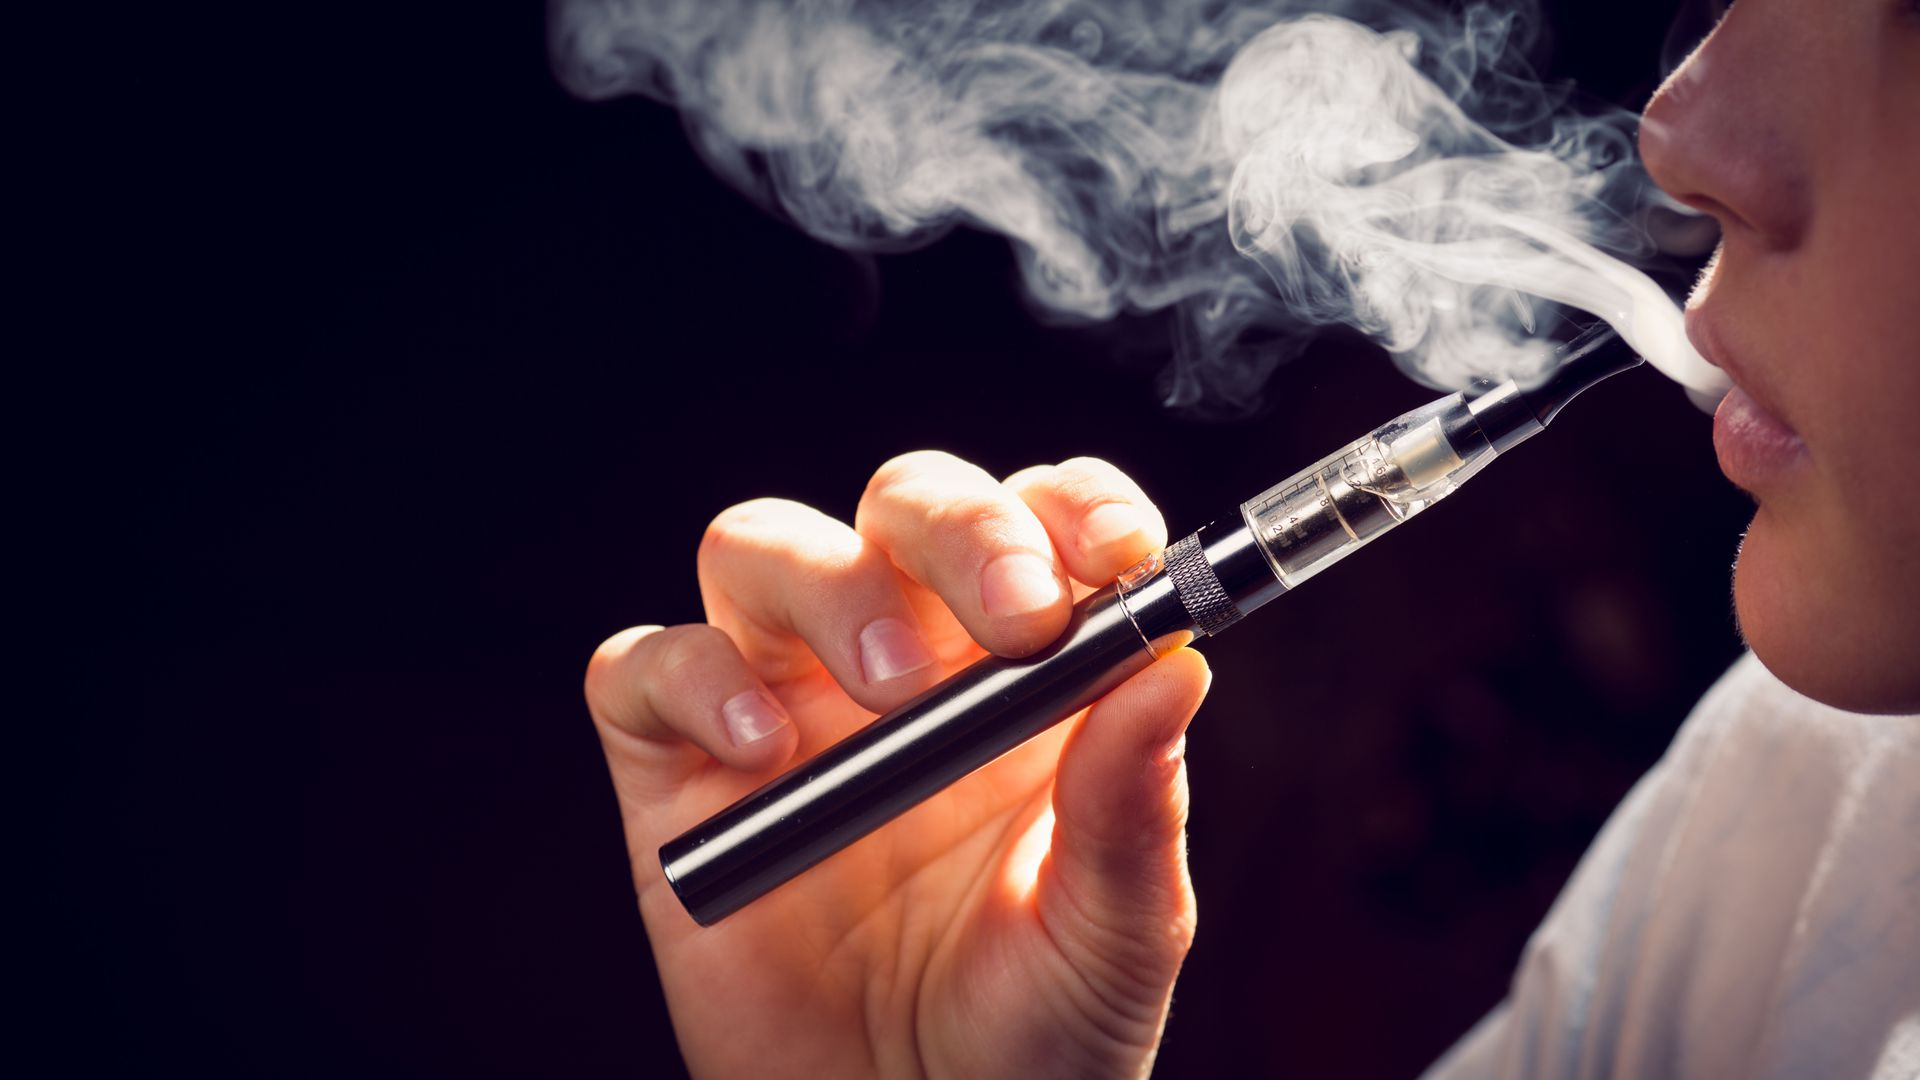 In this image, a young person holds an e-cigarette and vapes.